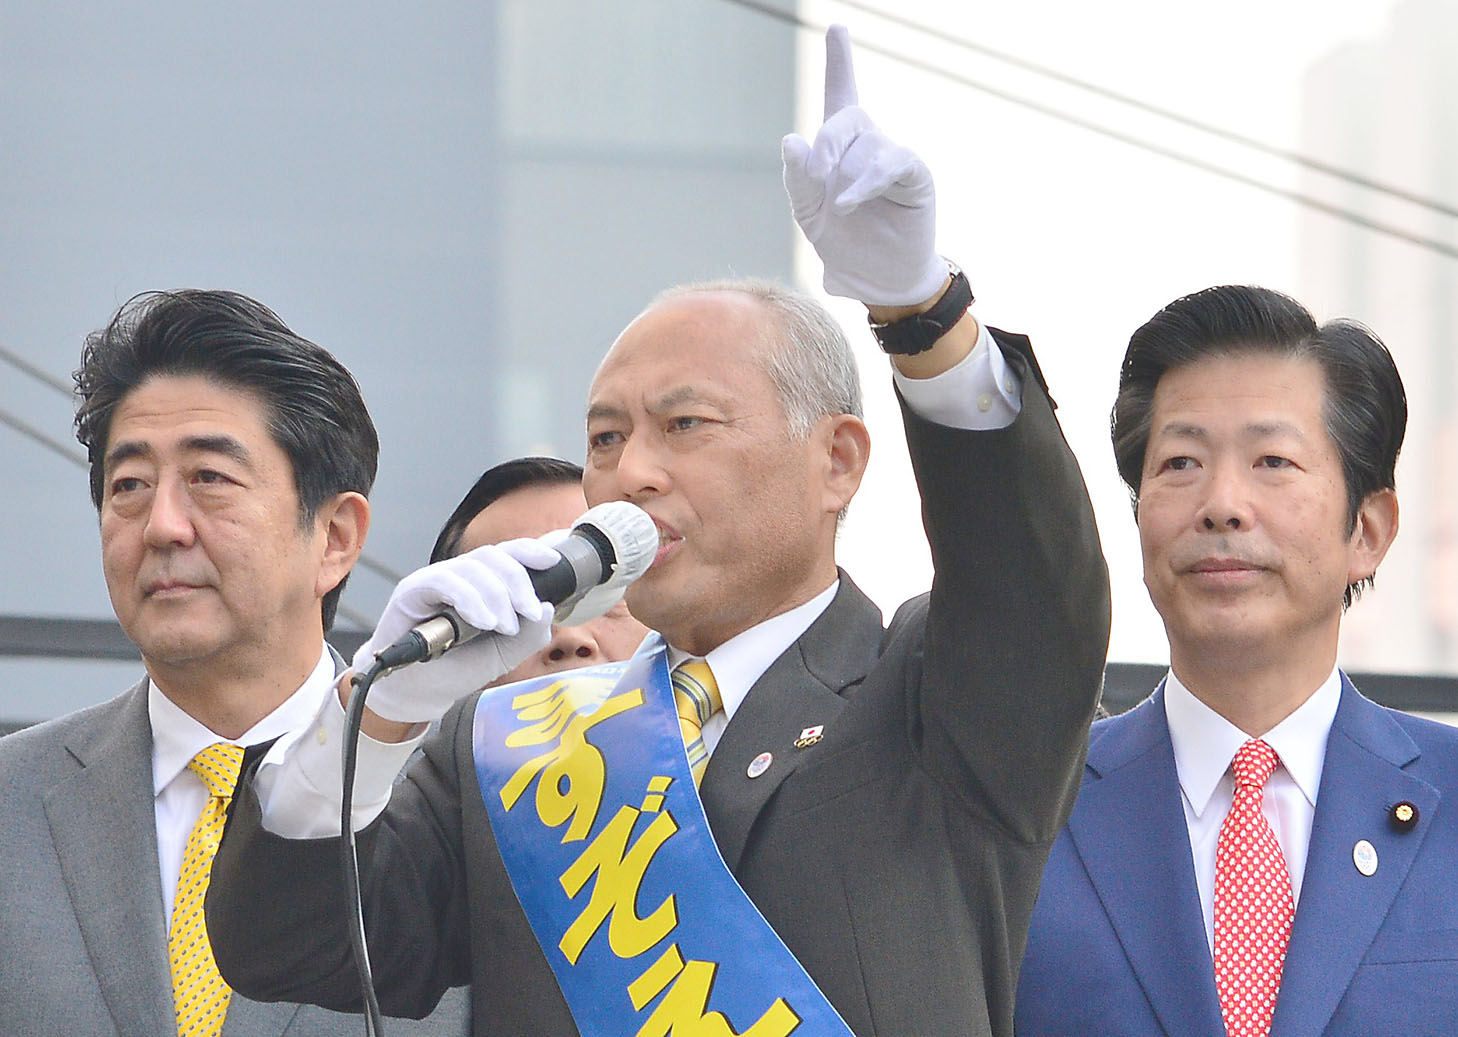 Gloves off: Former health minister and current Tokyo gubernatorial candidate Yoichi Masuzoe (above) delivers a campaign speech in Tokyo on Sunday while sharing the stage with Prime Minister Shinzo Abe (left) and New Komeito leader Natsuo Yamaguchi. | AFP-JIJI